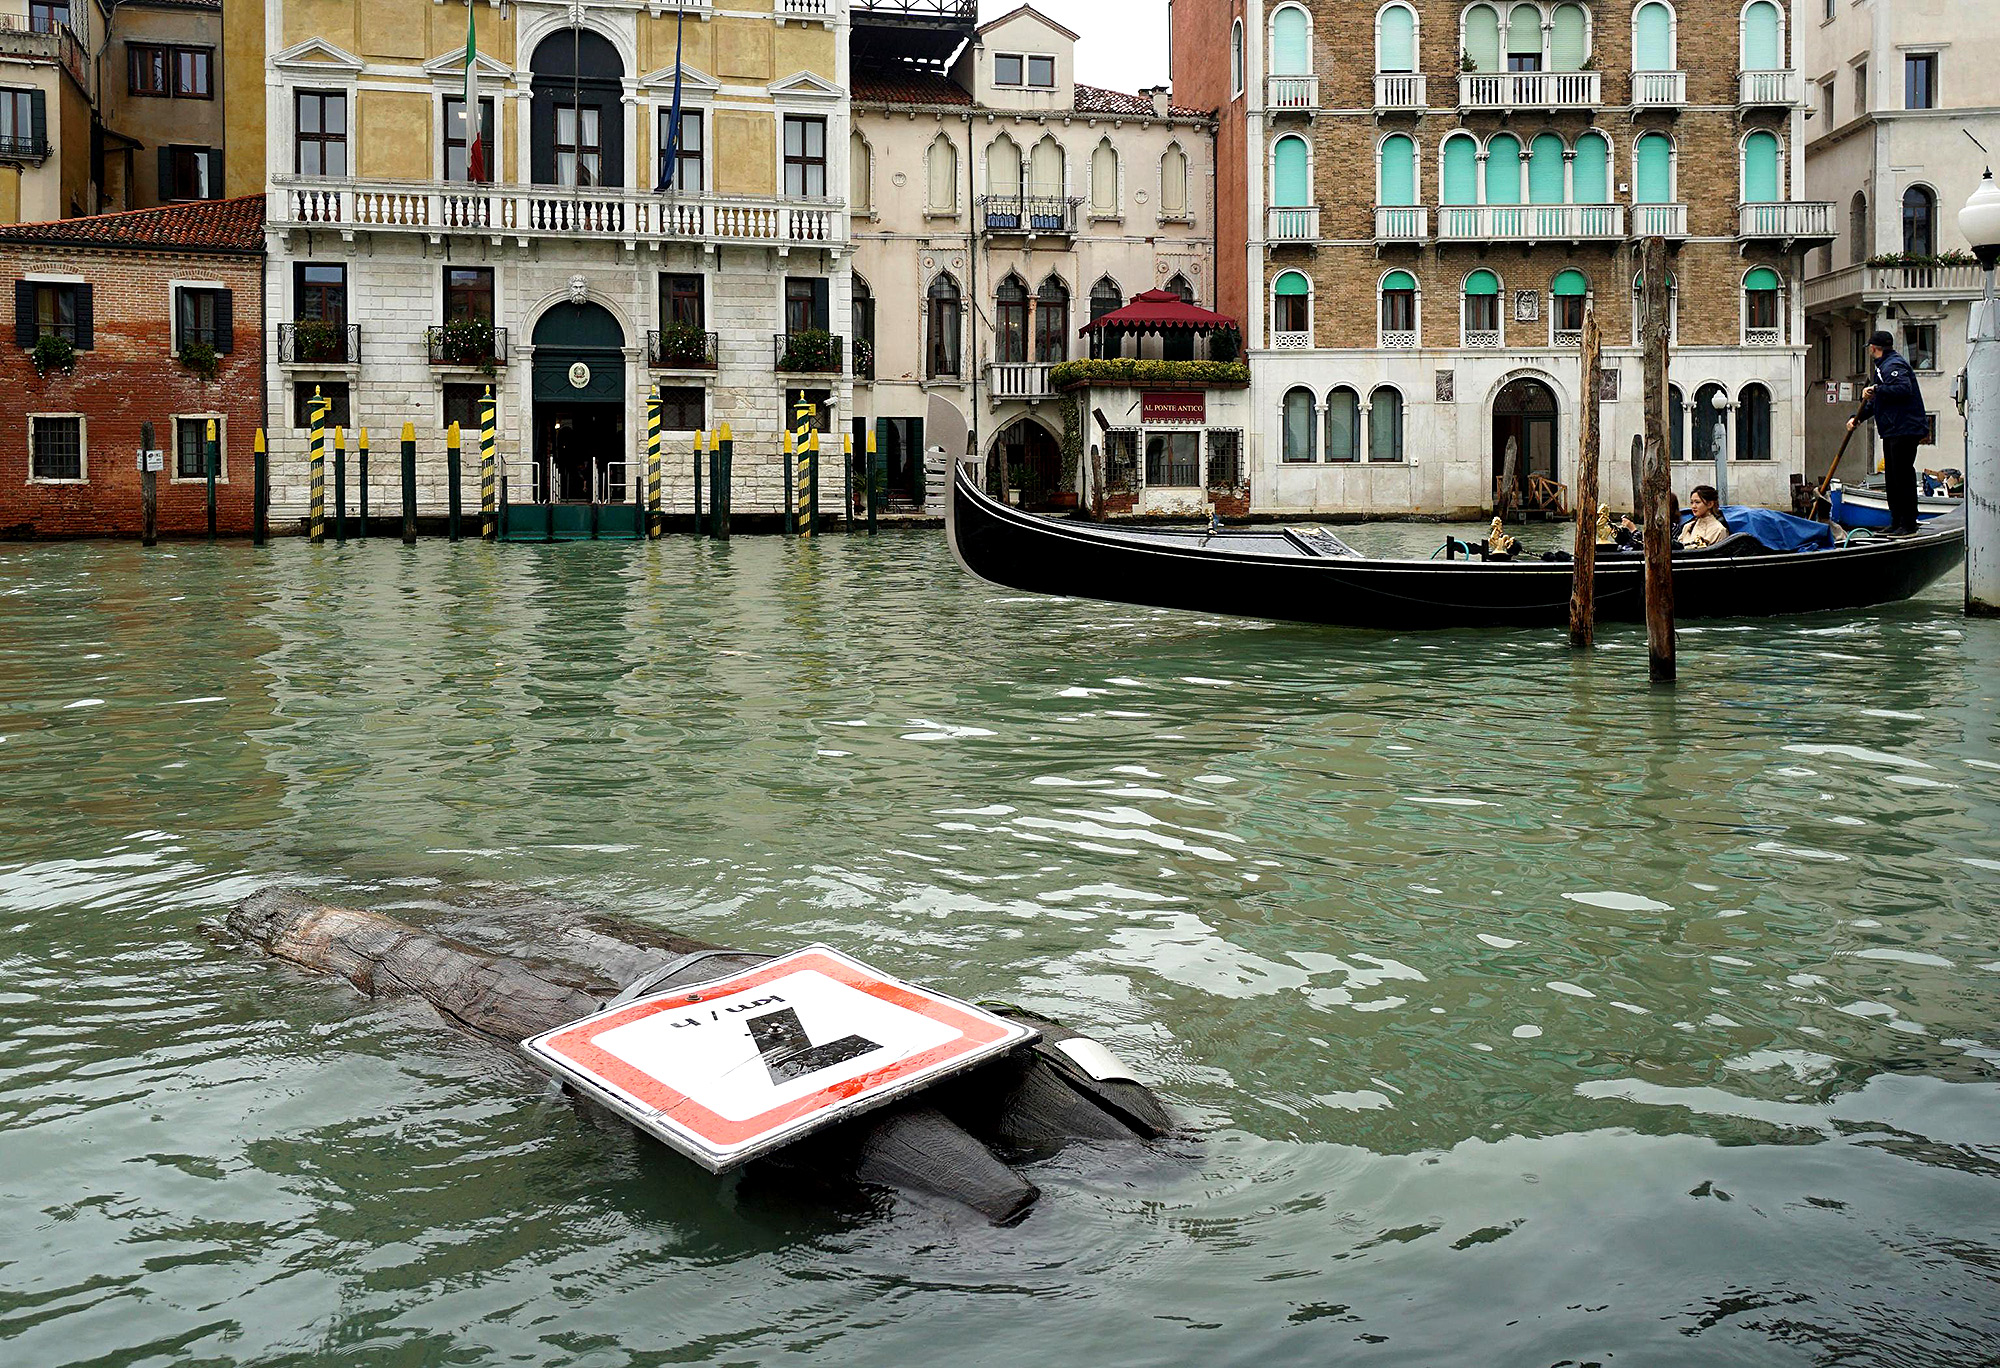 Flood in Venice aftermath, Italy - 30 Oct 2018